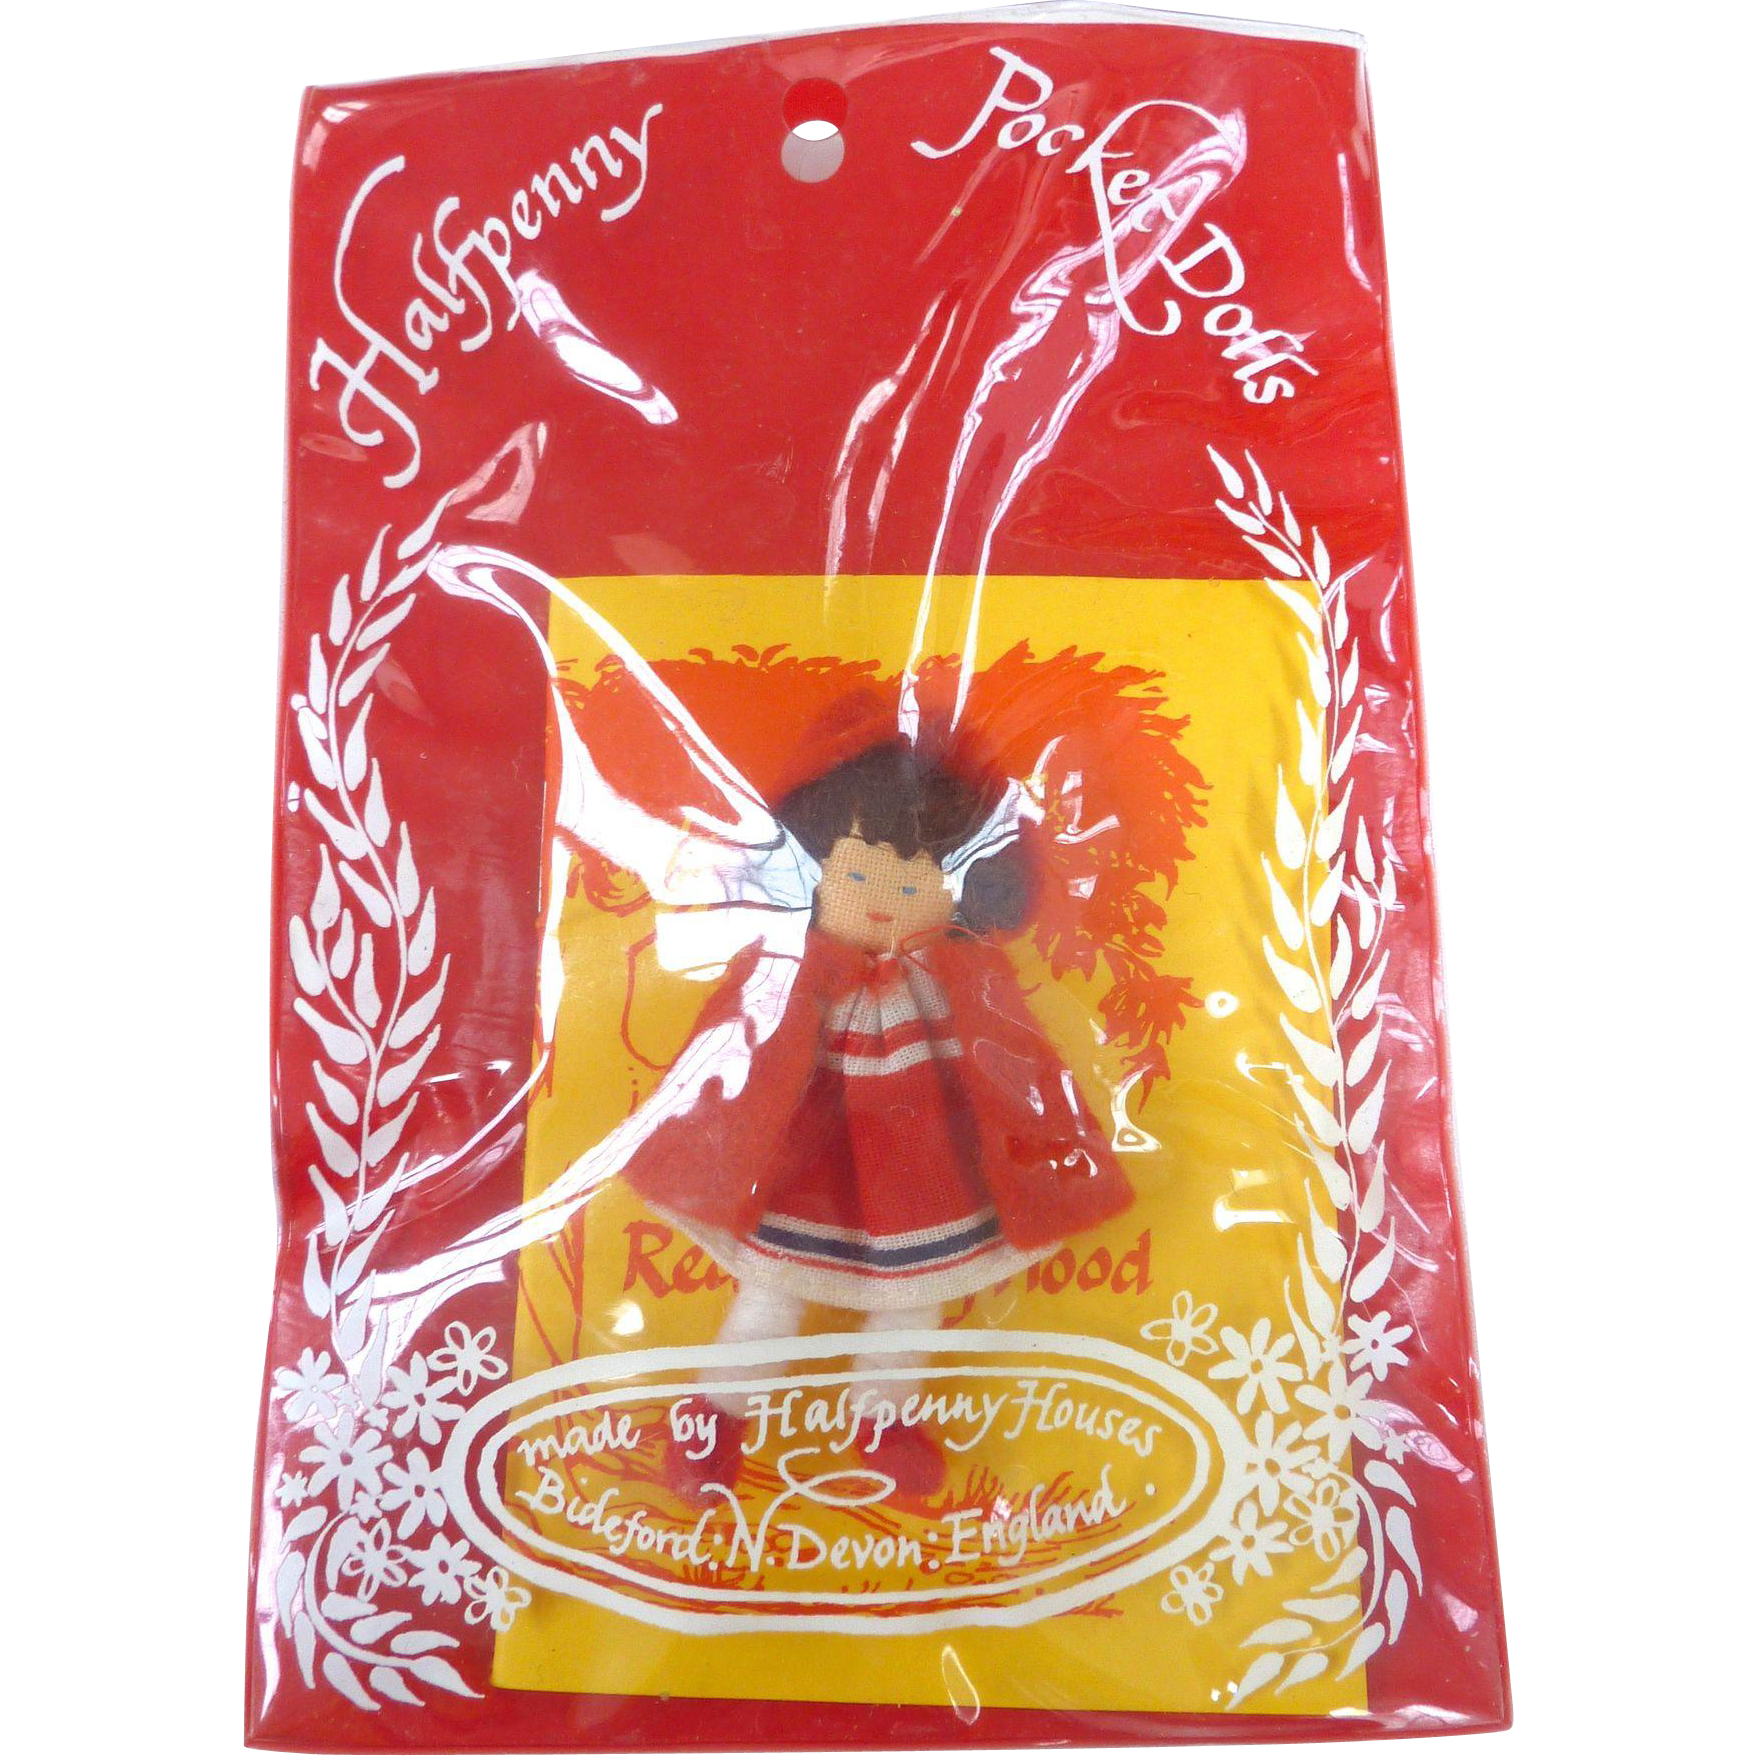 "Miniature 'Little Red Riding Hood' 2.5"" Halfpenny Pocket Doll by Halfpenny Houses~Made in England~"